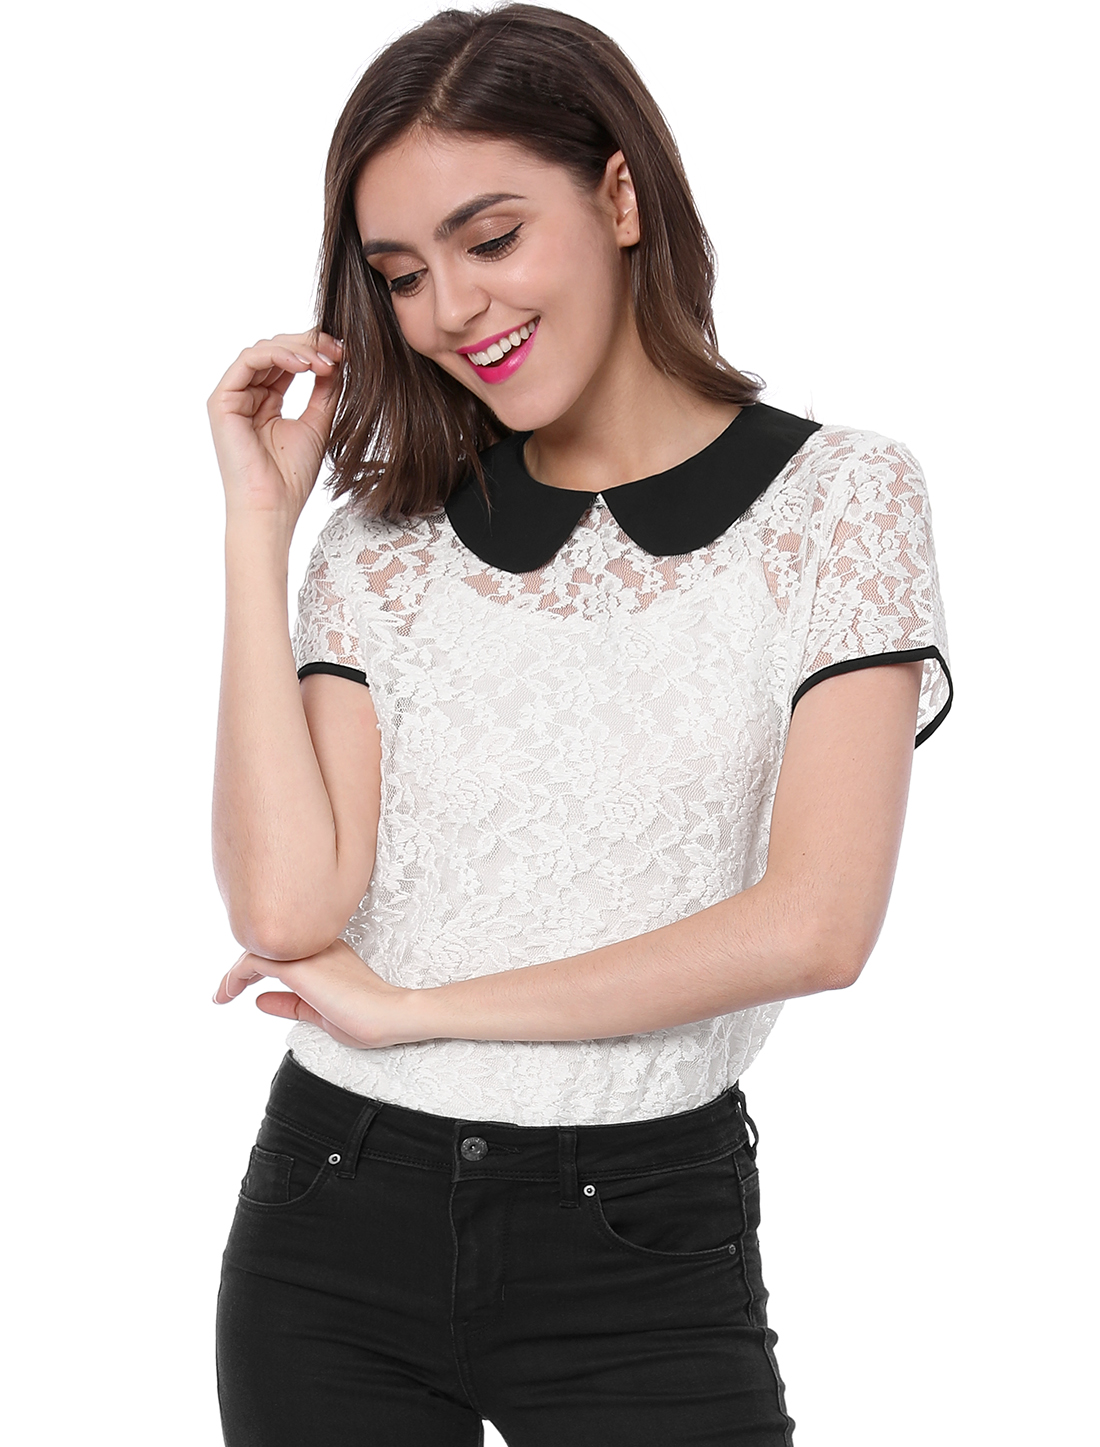 Women See Through Contrast Peter Pan Collar Lace Top White XS